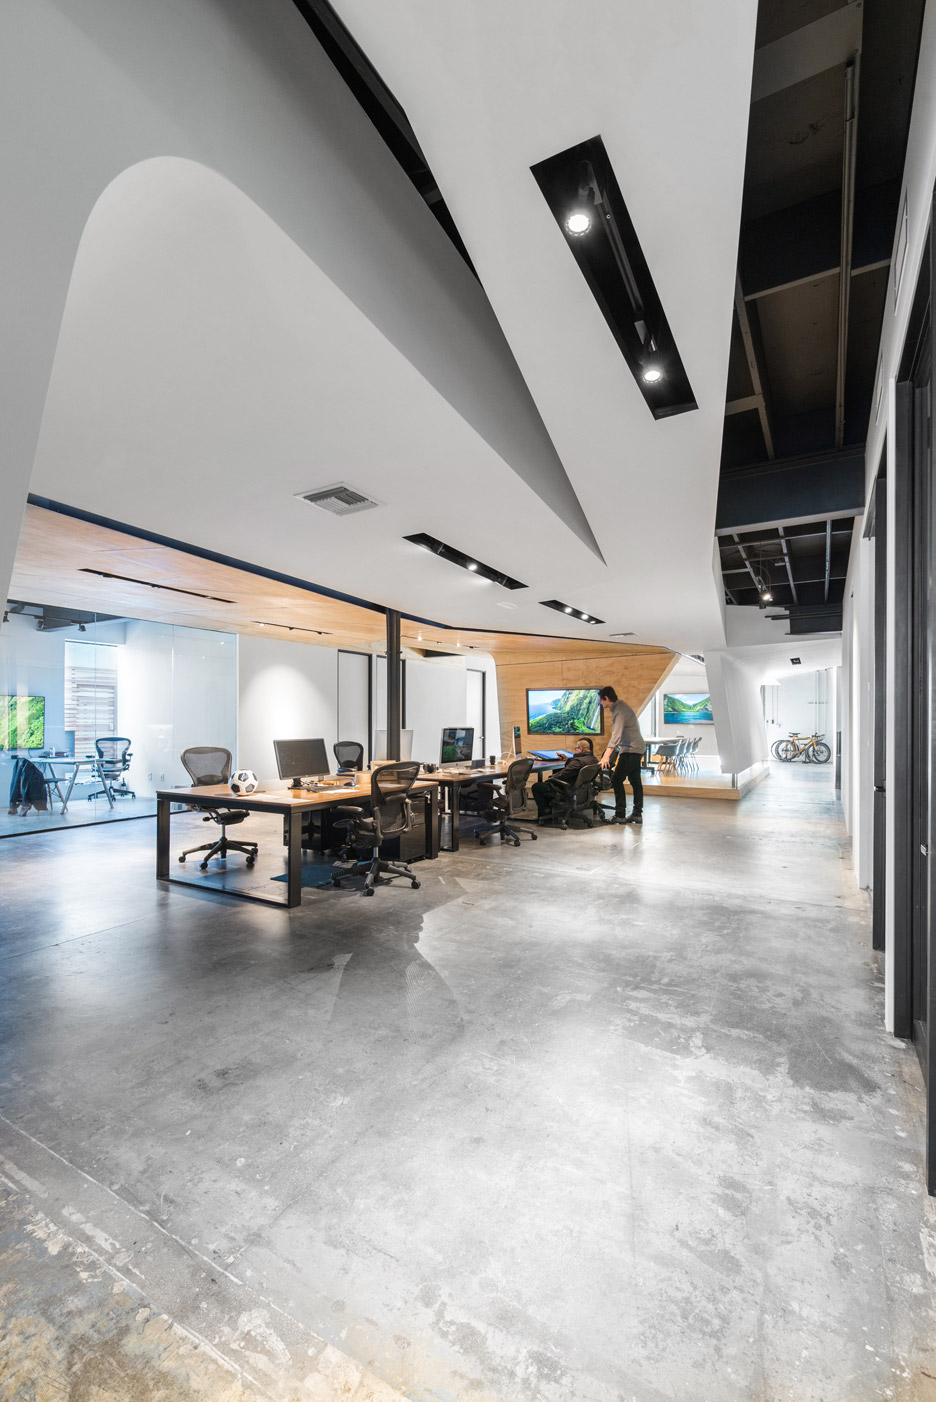 The VIL Creative Office by Domaen in Pasadena, CA